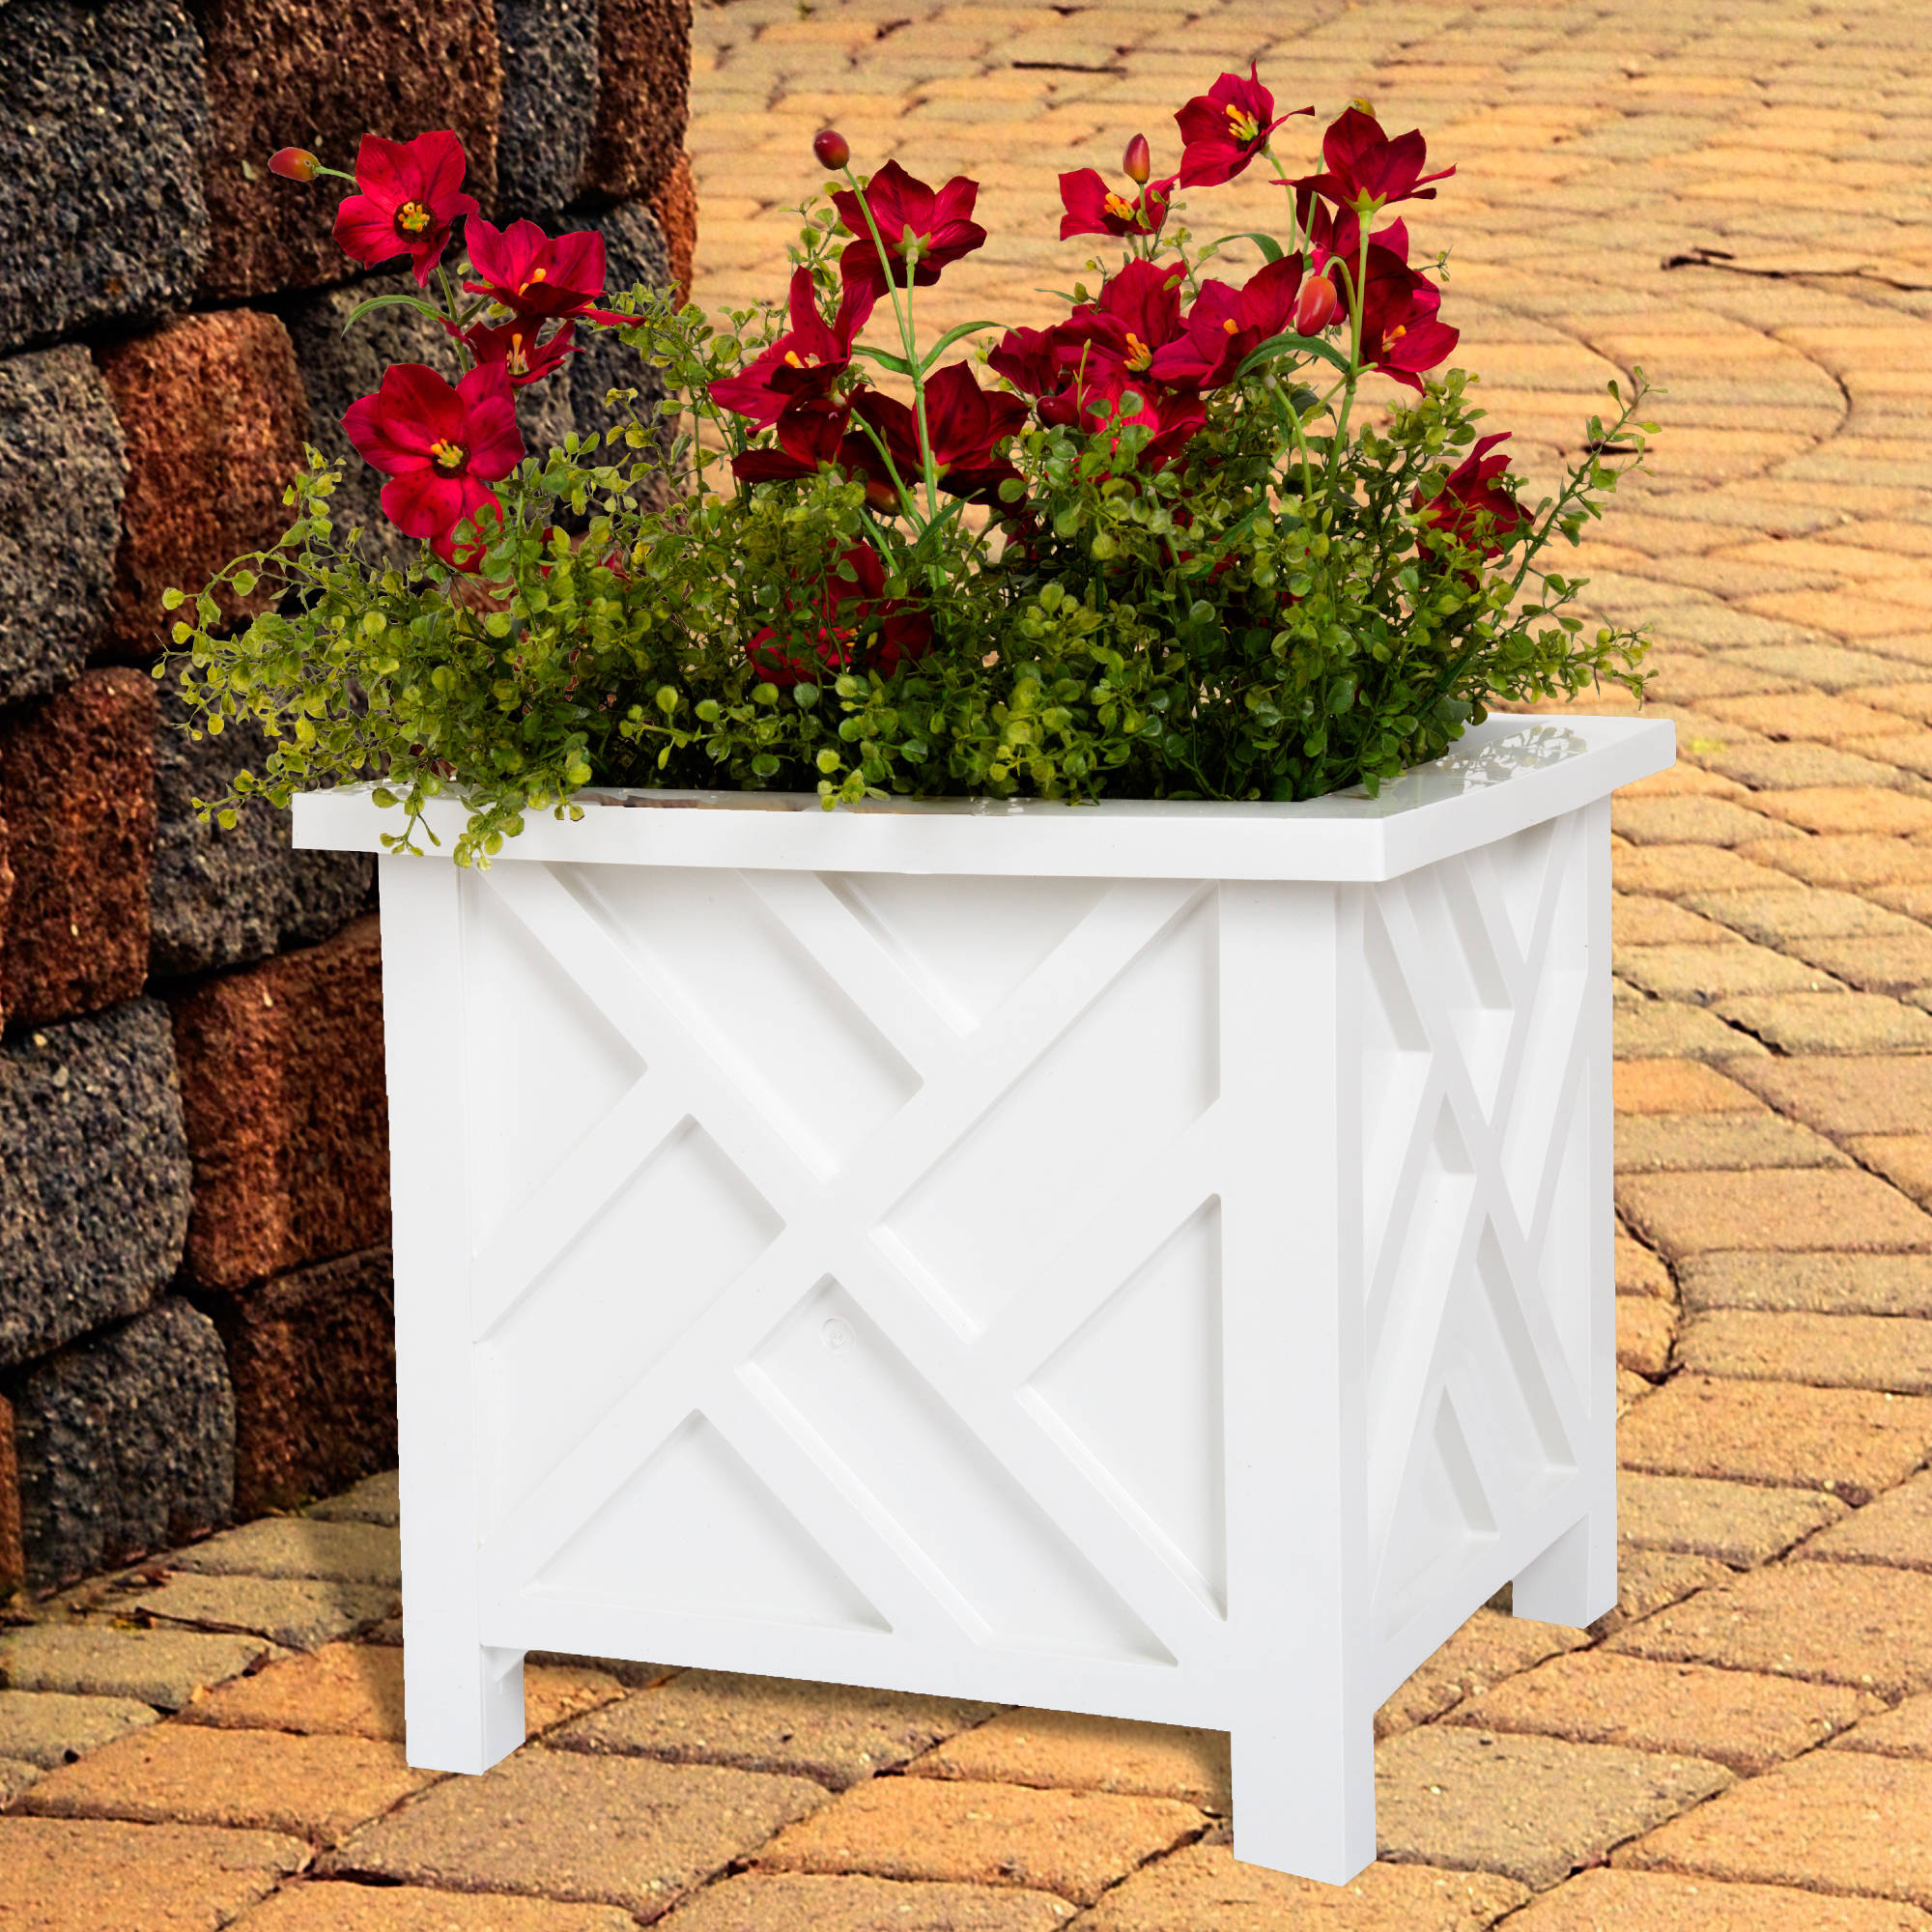 Plant Holder U2013 Planter Container Box For Garden, Patio, And Lawn U2013 Outdoor  Decor By Pure Garden U2013 White   Walmart.com